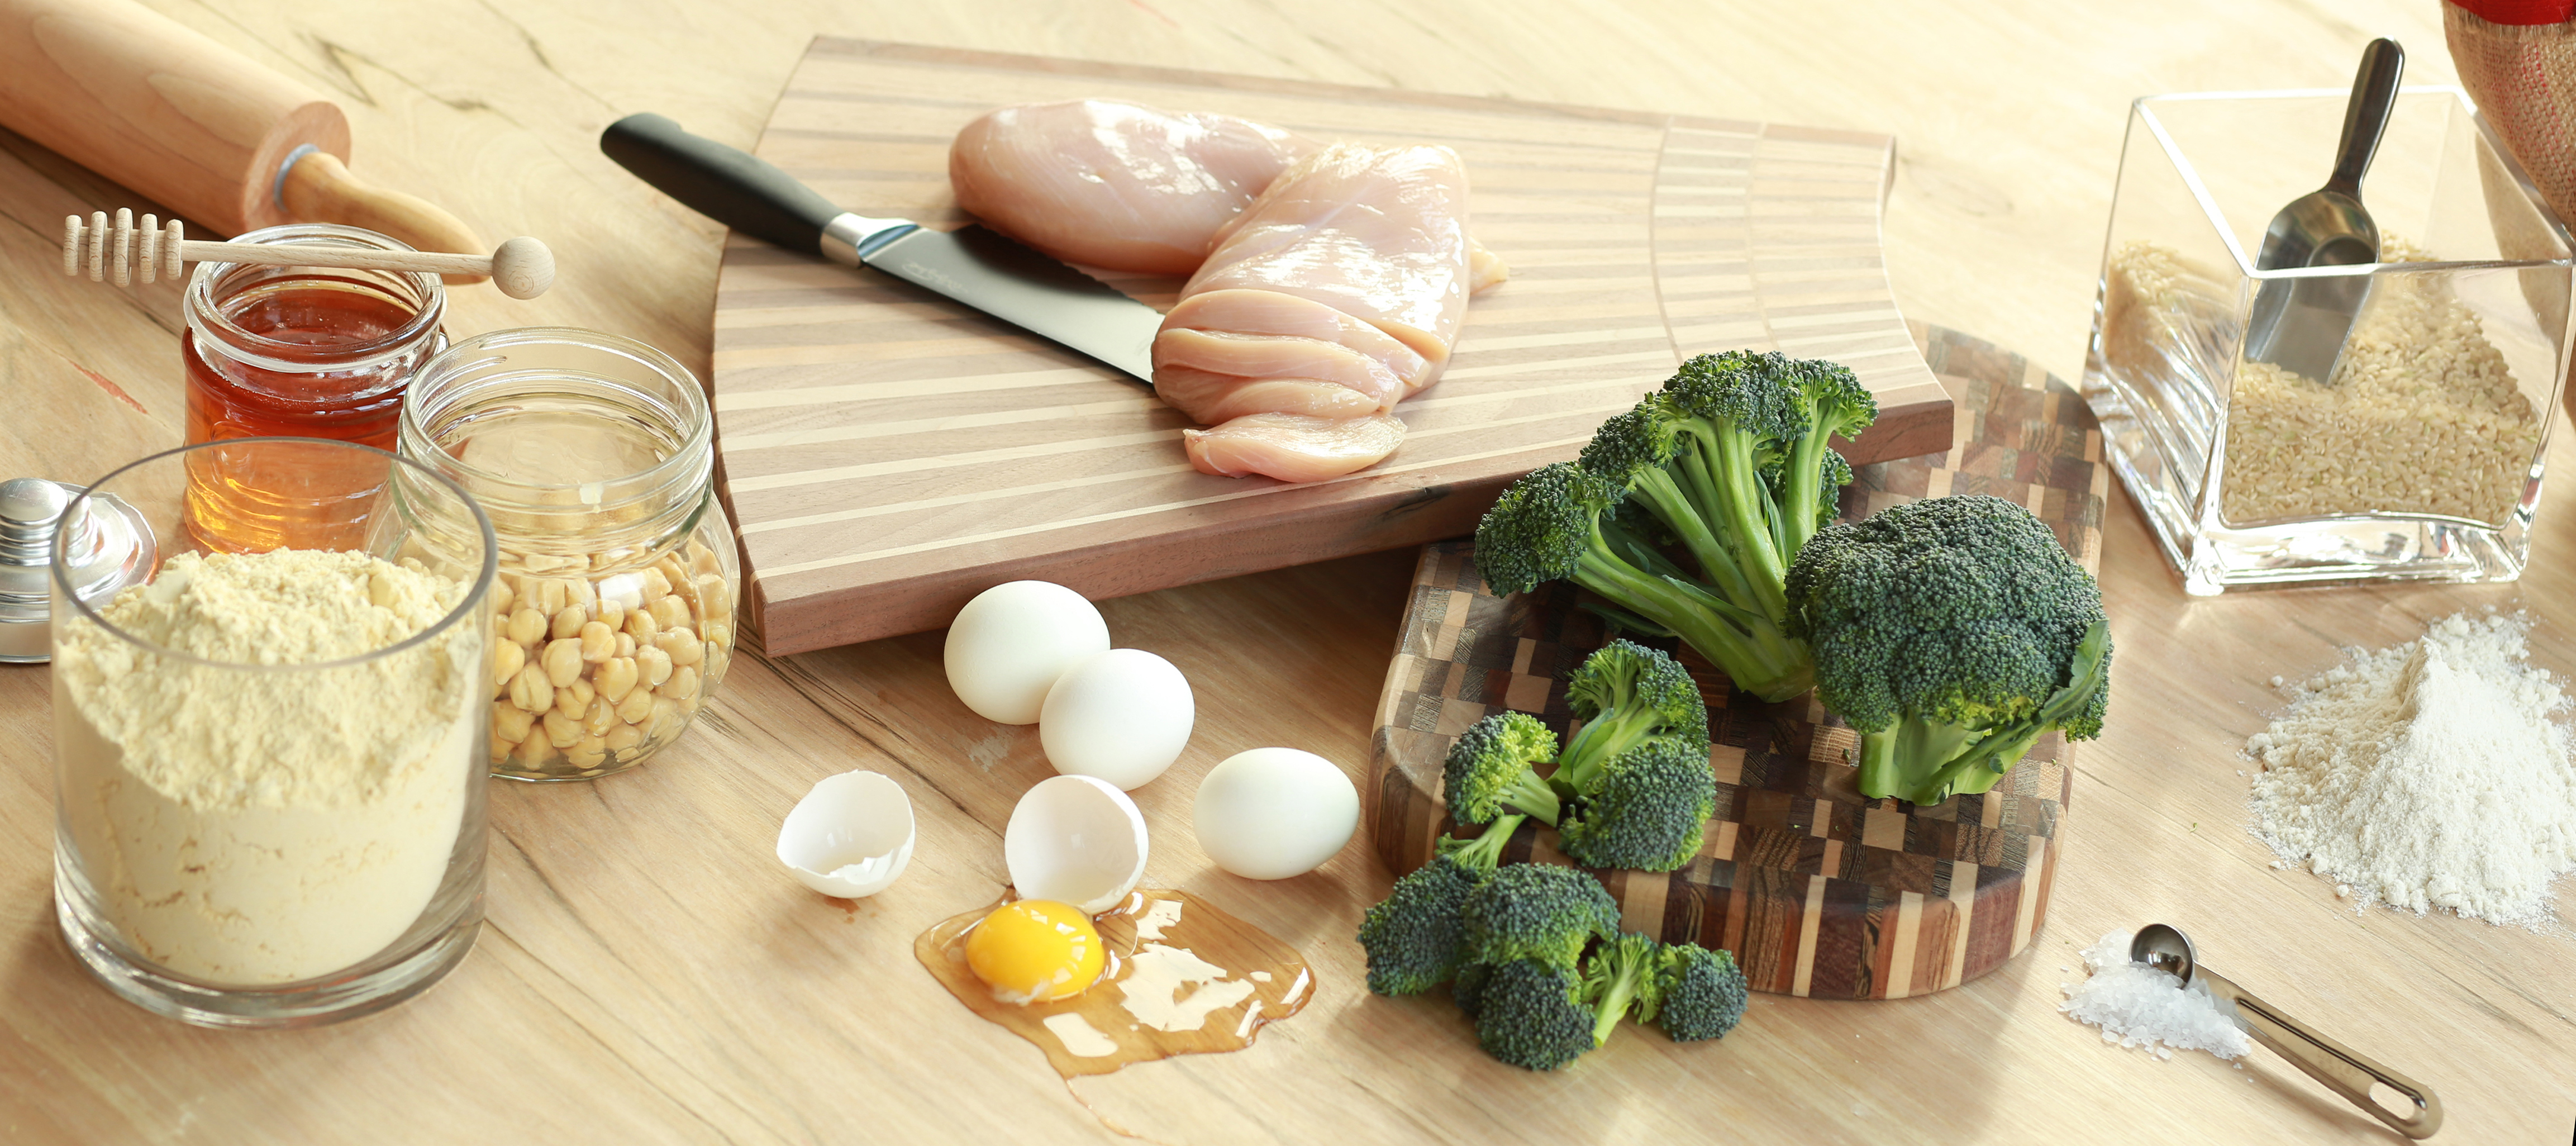 Healthy Ingredients for cooking